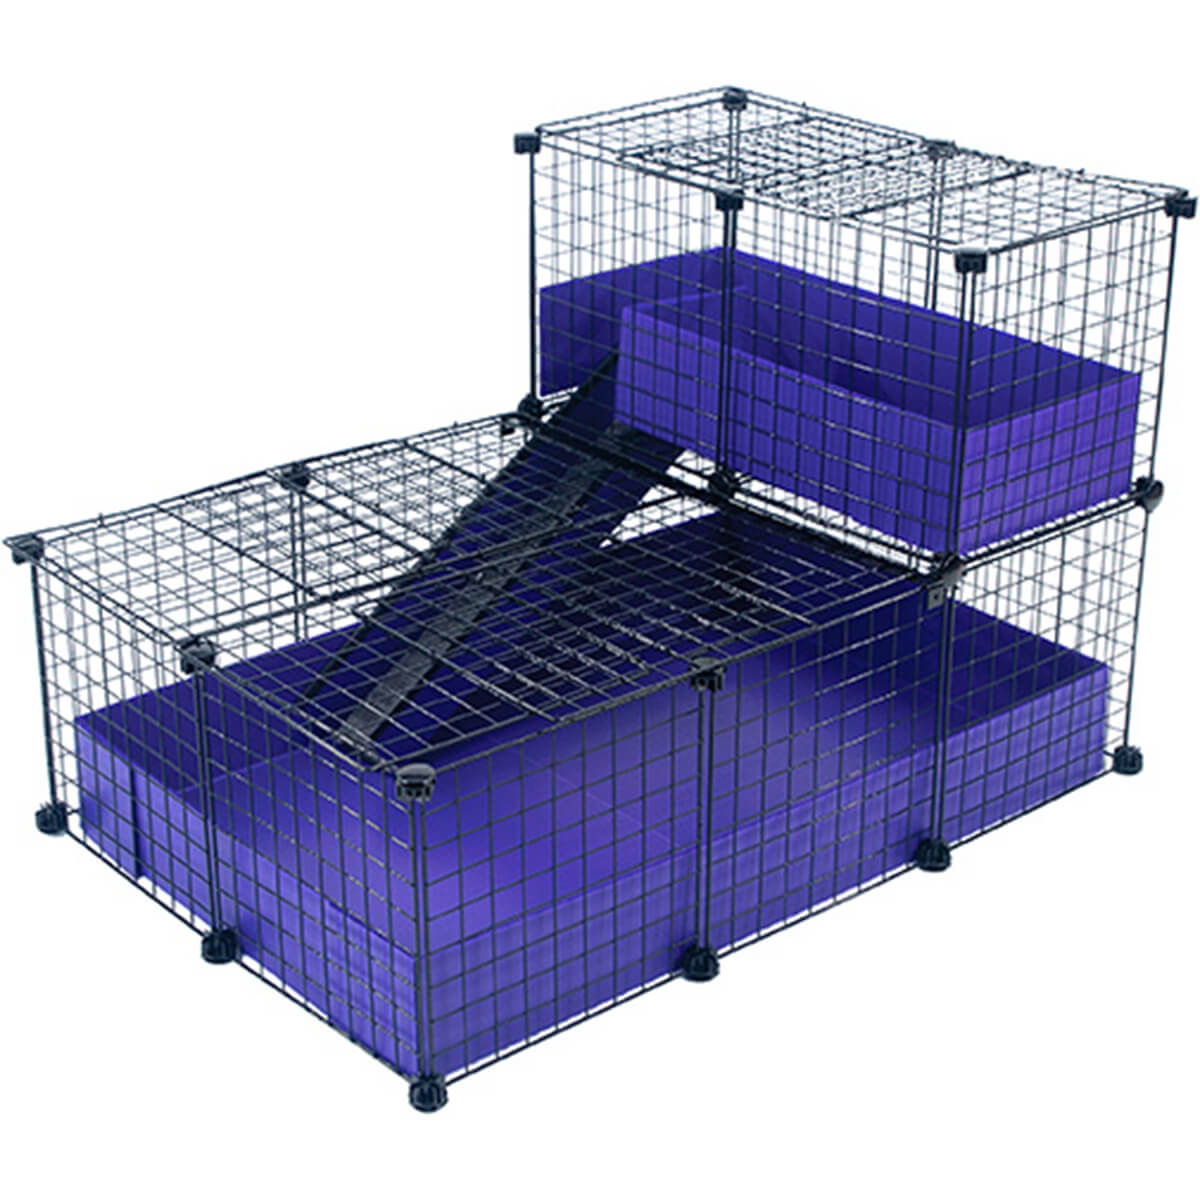 Small with narrow loft covered deluxe covered cages c for Making a c c cage